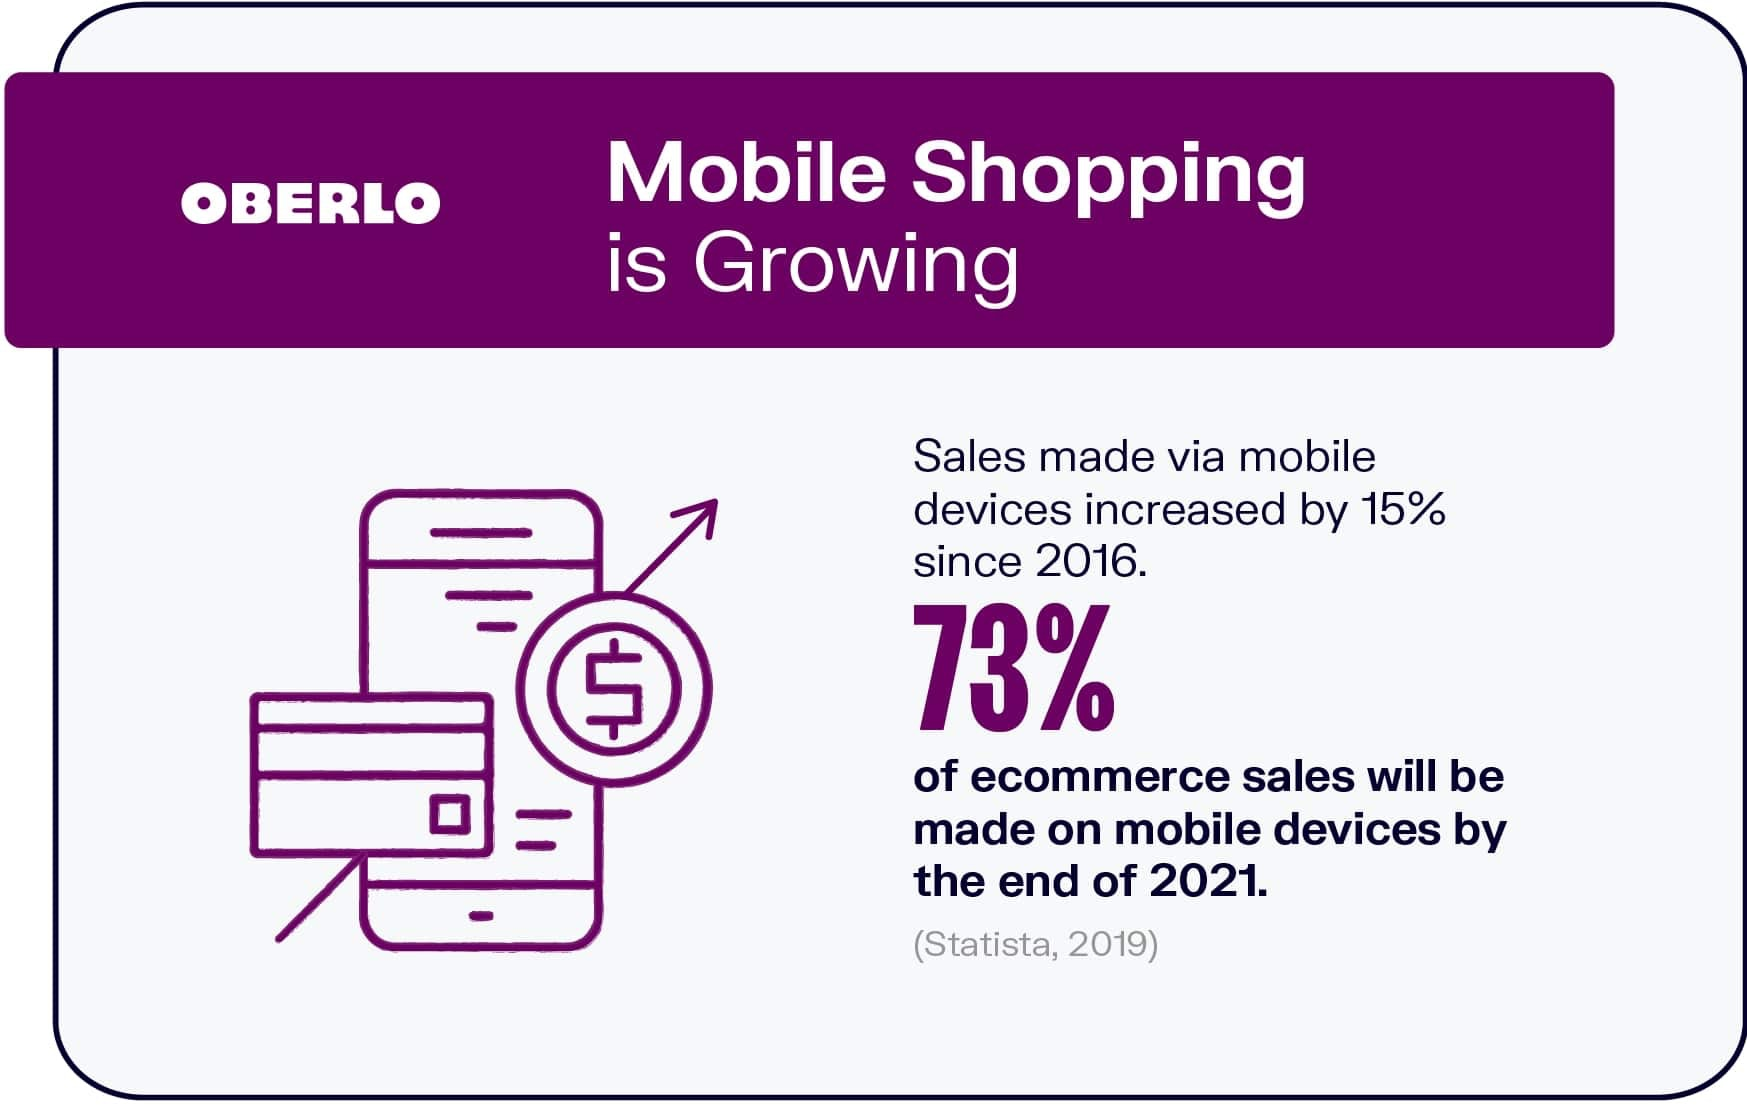 Mobile Shopping is Growing